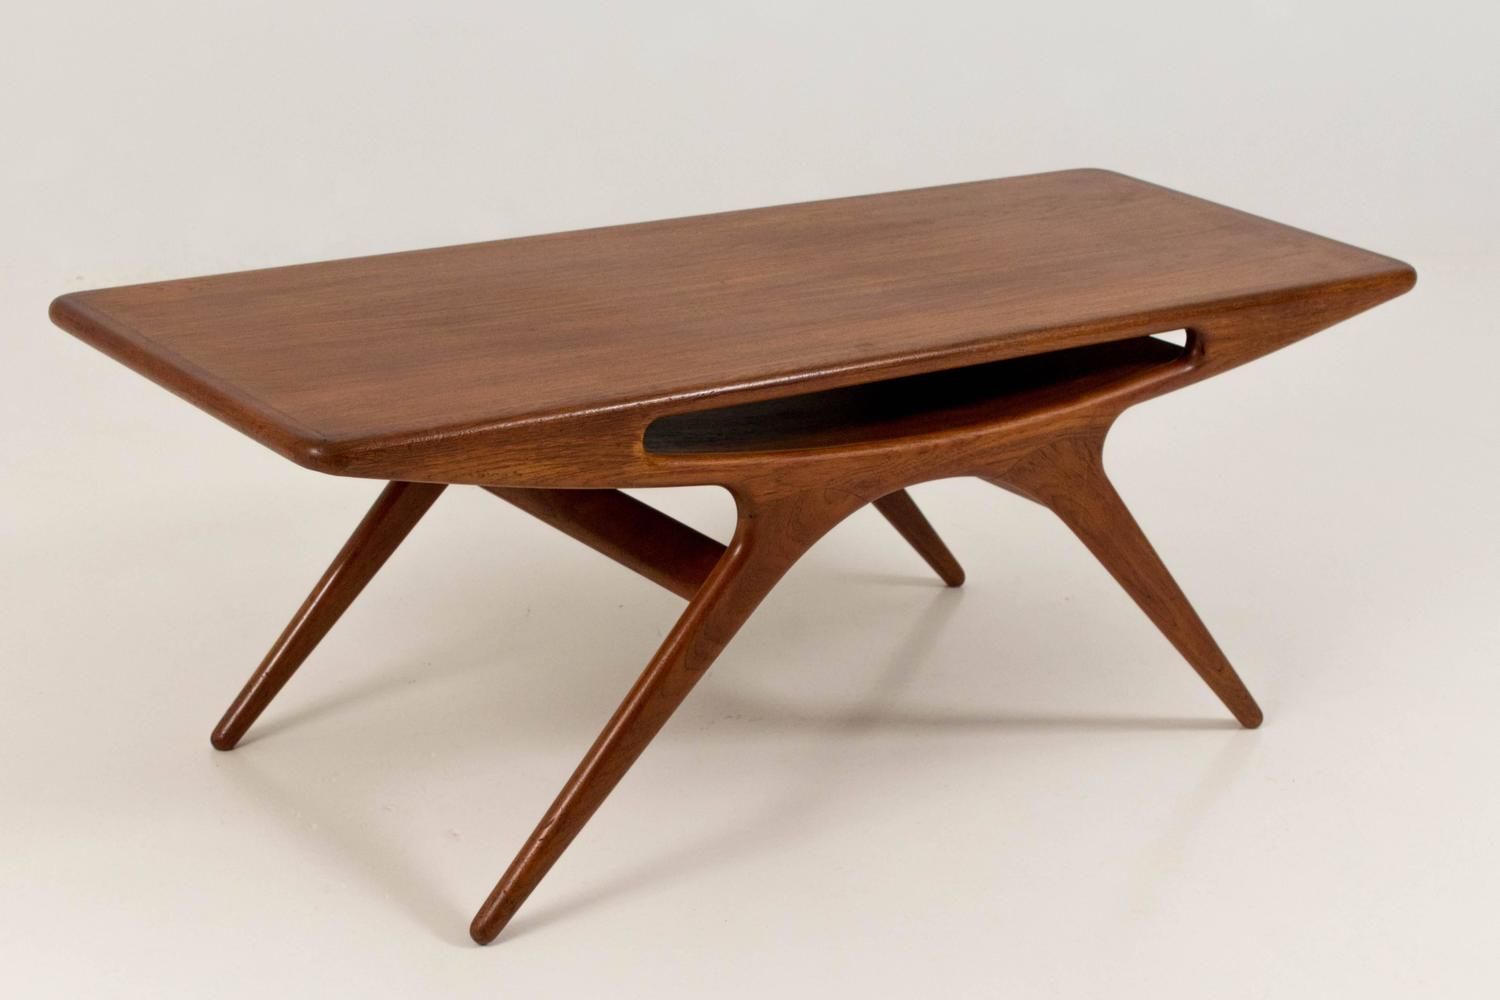 Iconic smile coffee table by johannes andersen for cfc for Iconic tables